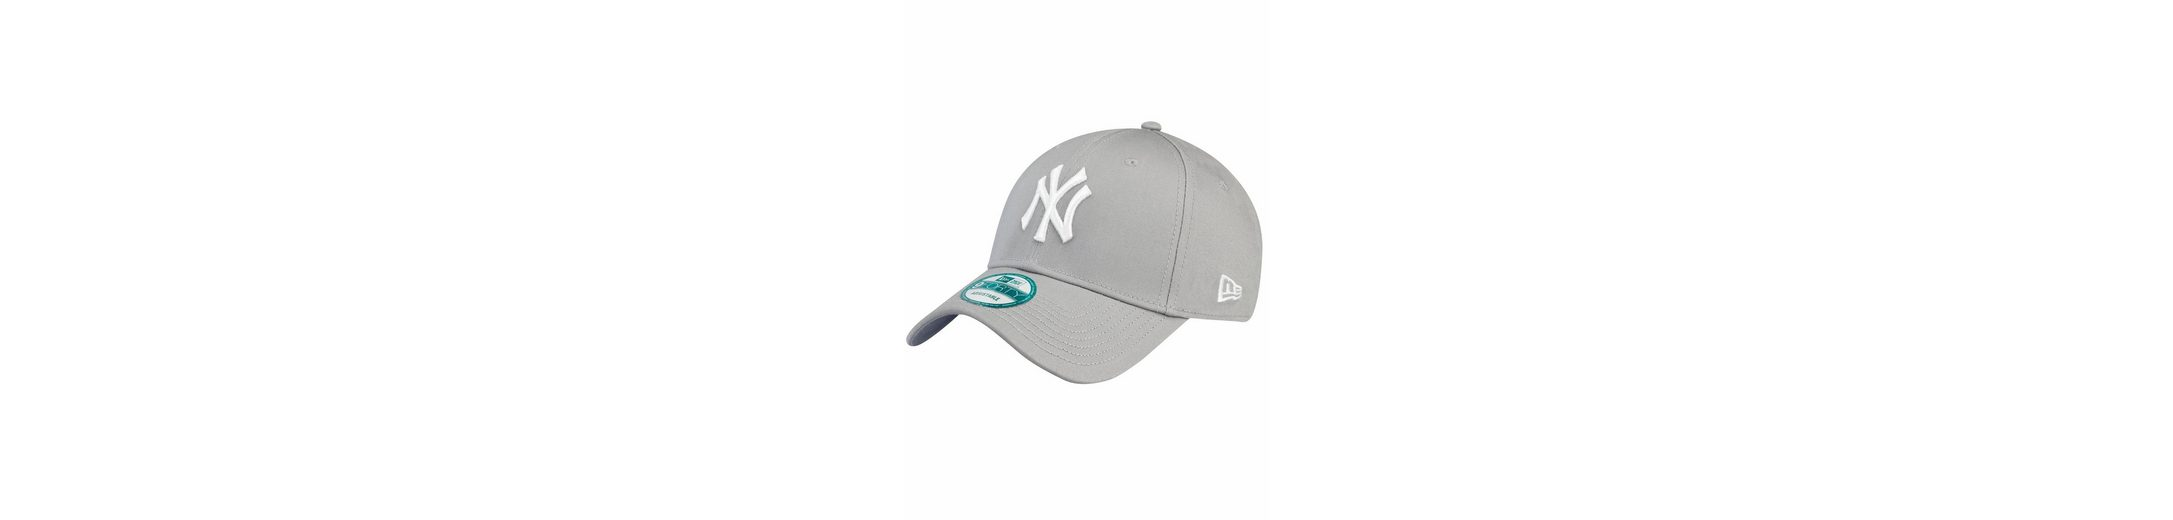 New Era Flex Cap 39Thirty flexfitted